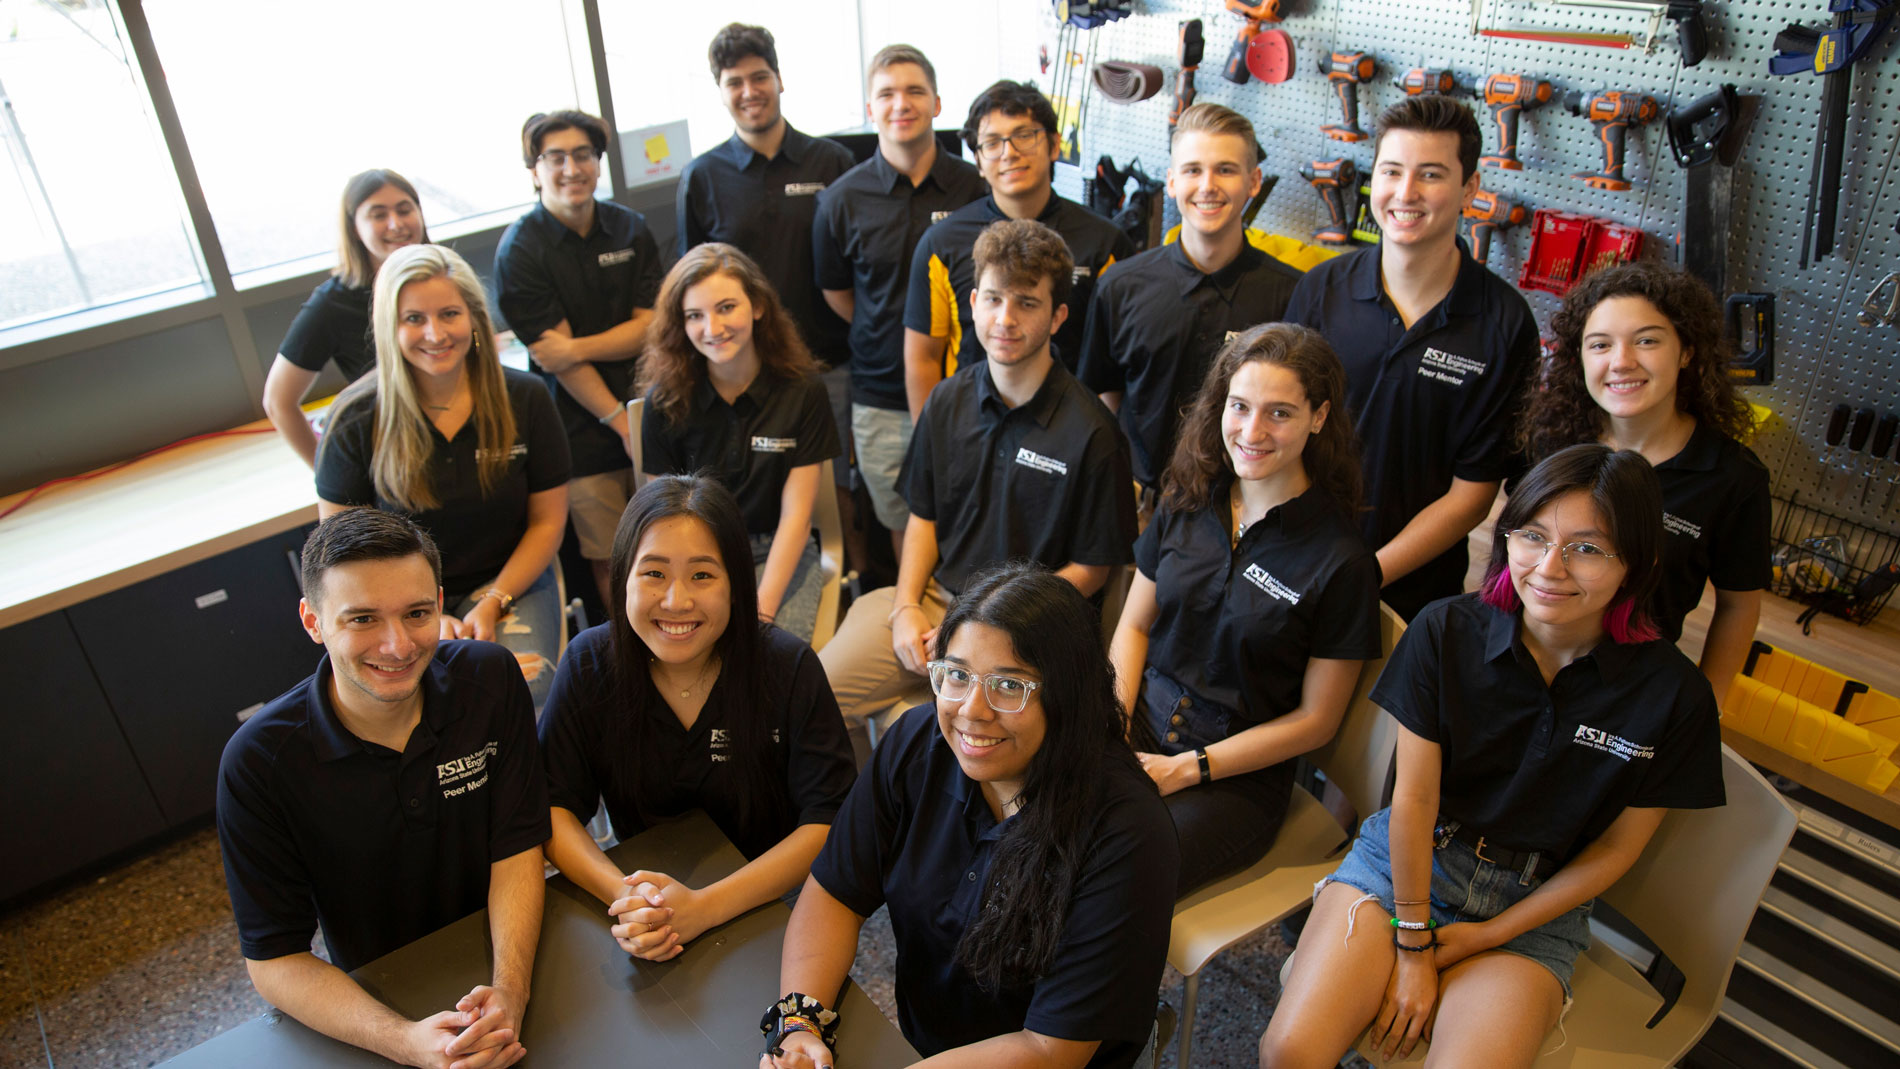 A group photo of the Ira A. Fulton Schools of Engineering peer mentors.